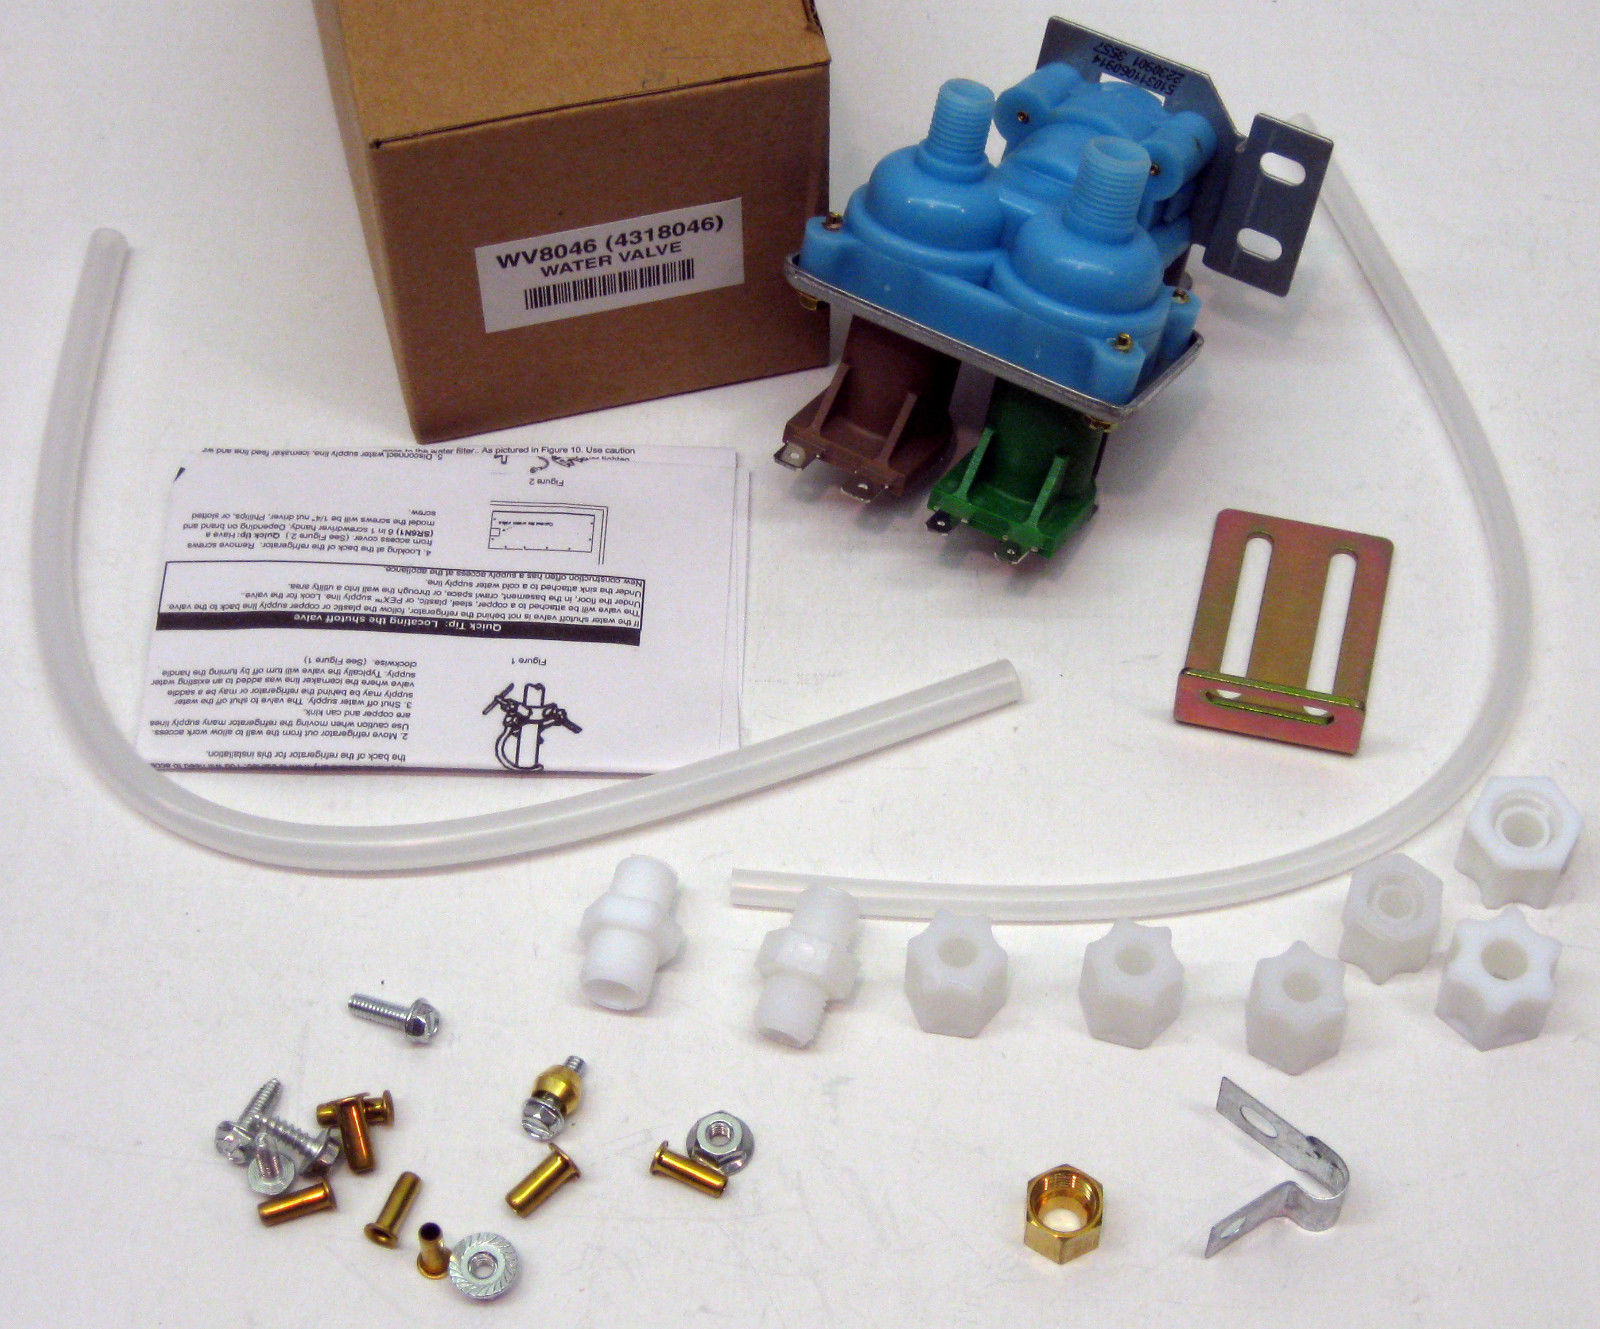 Wv8046 Water Valve For 4318046 2188542 Whirlpool Kenmore